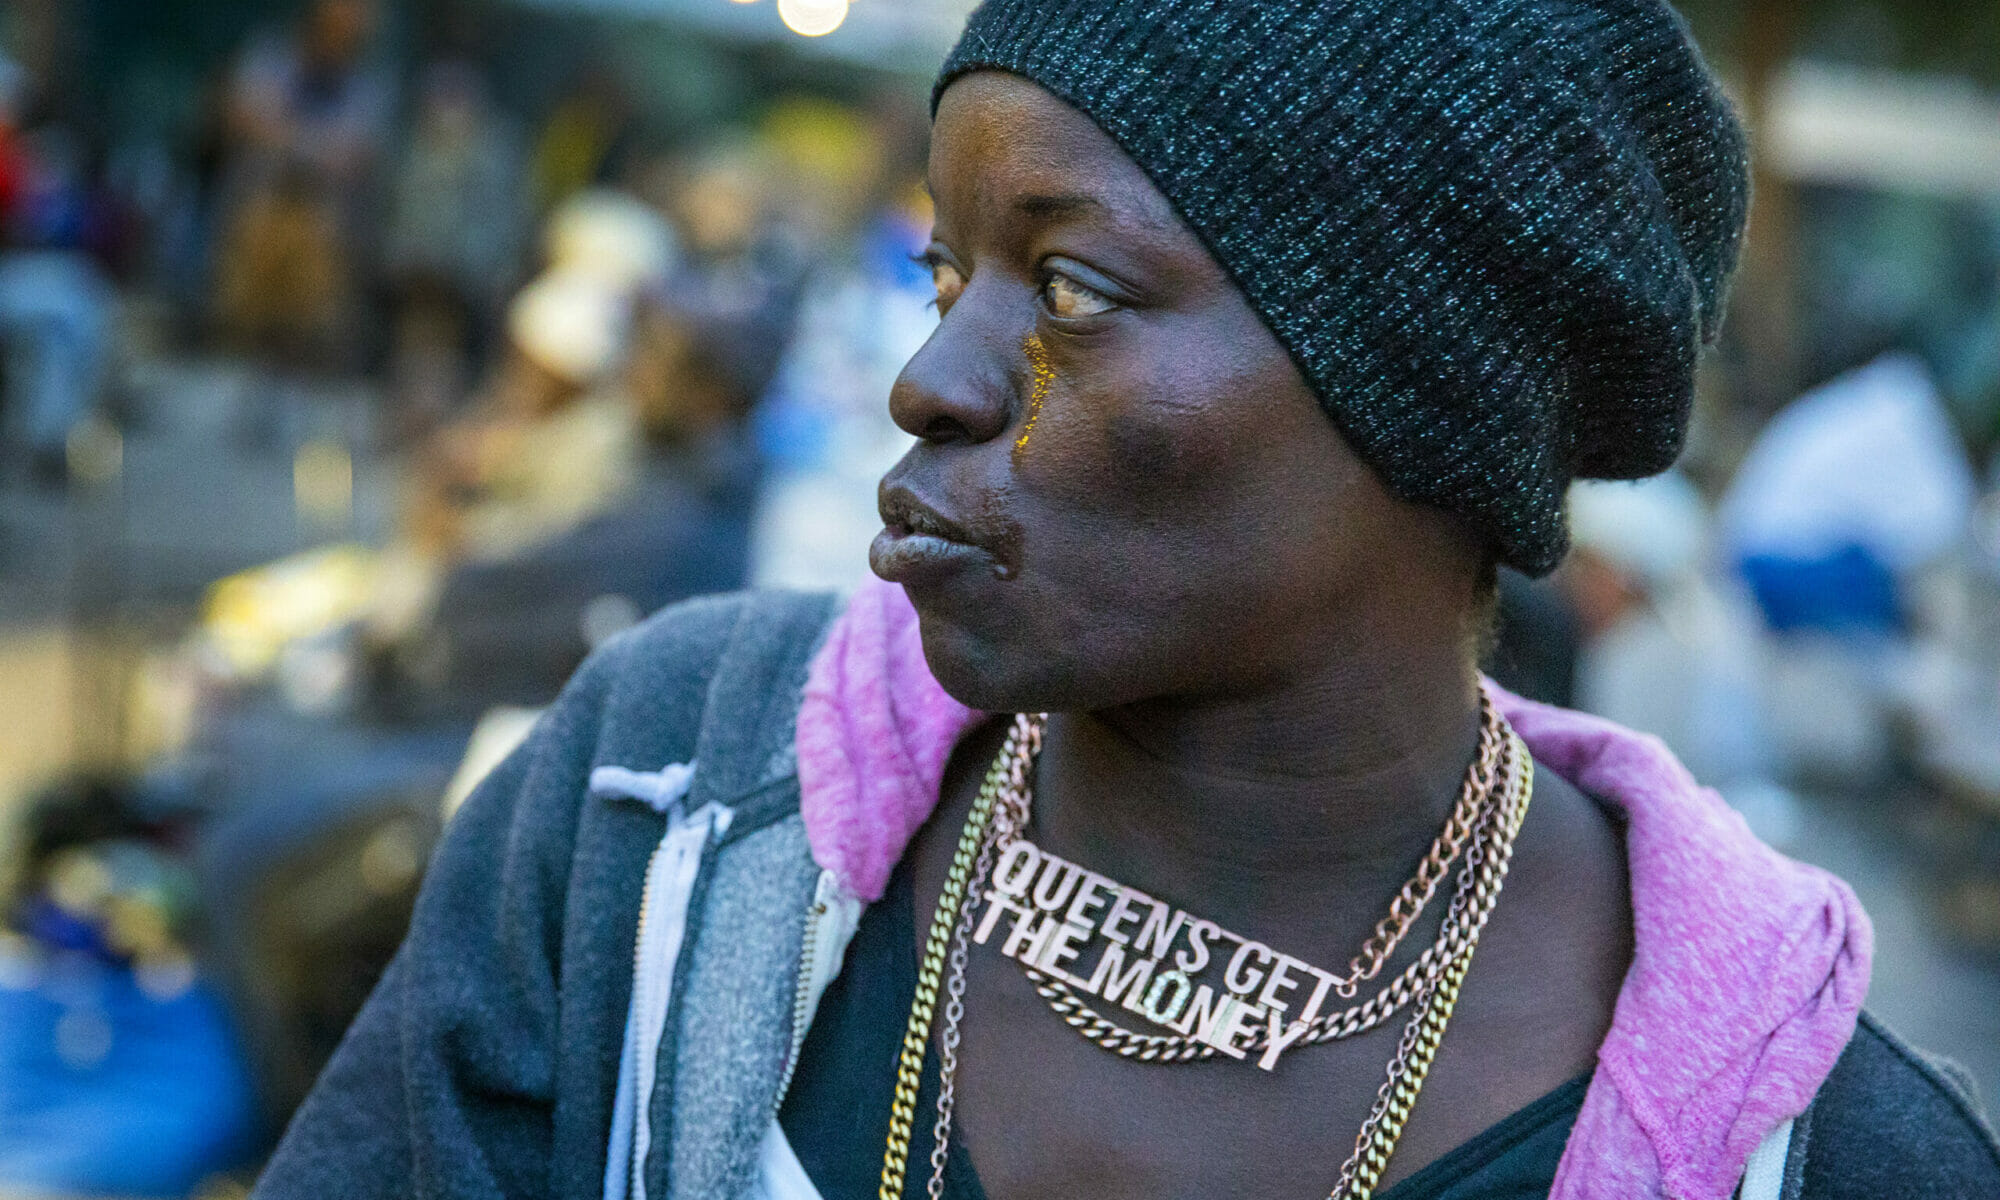 Kenya Obote wearing a light jacket, gold necklaces and a black scarf on her head